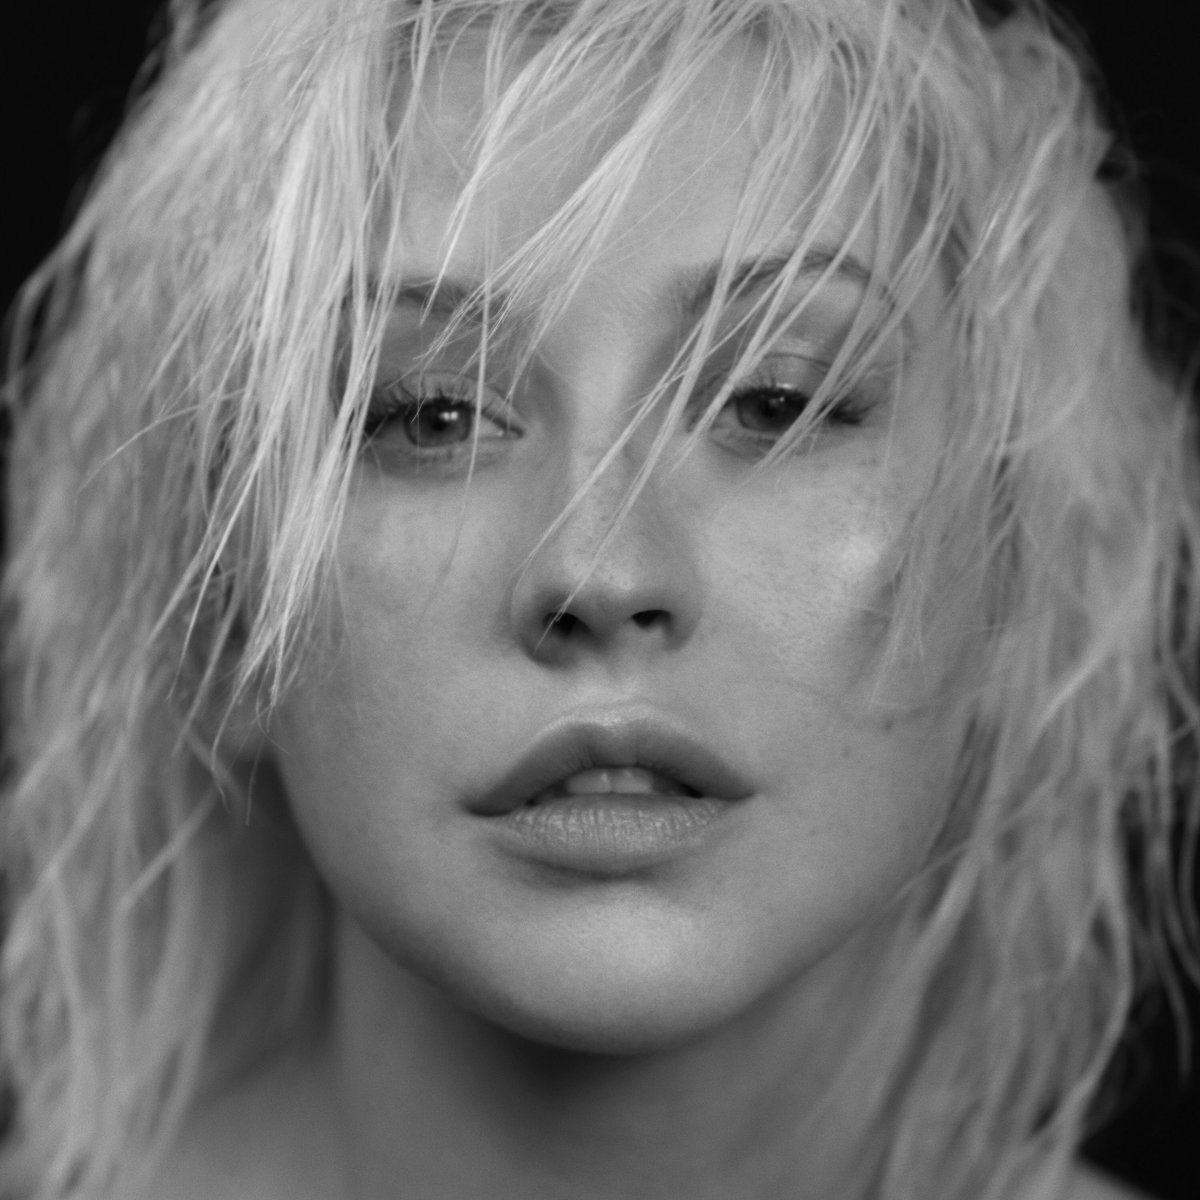 The new @xtina album is FIRE!!! ????❤️ Let me know what your favorite song is on #LIBERATION https://t.co/oebgZ7KYbu https://t.co/PdIUQUENsL